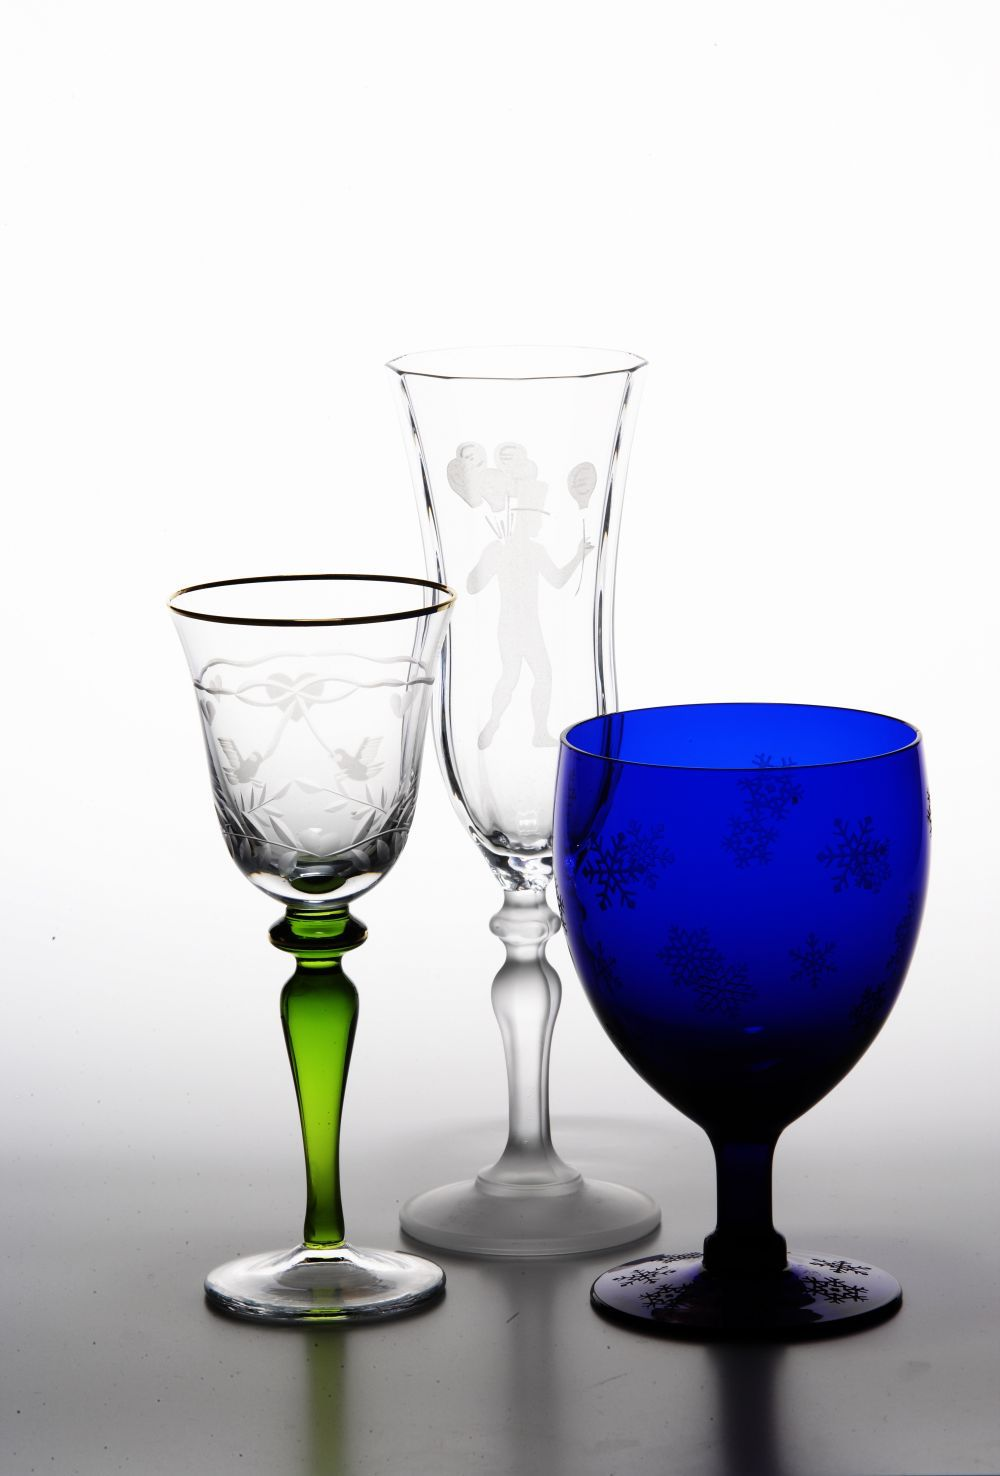 Engraved glasswear gifts in Auckland